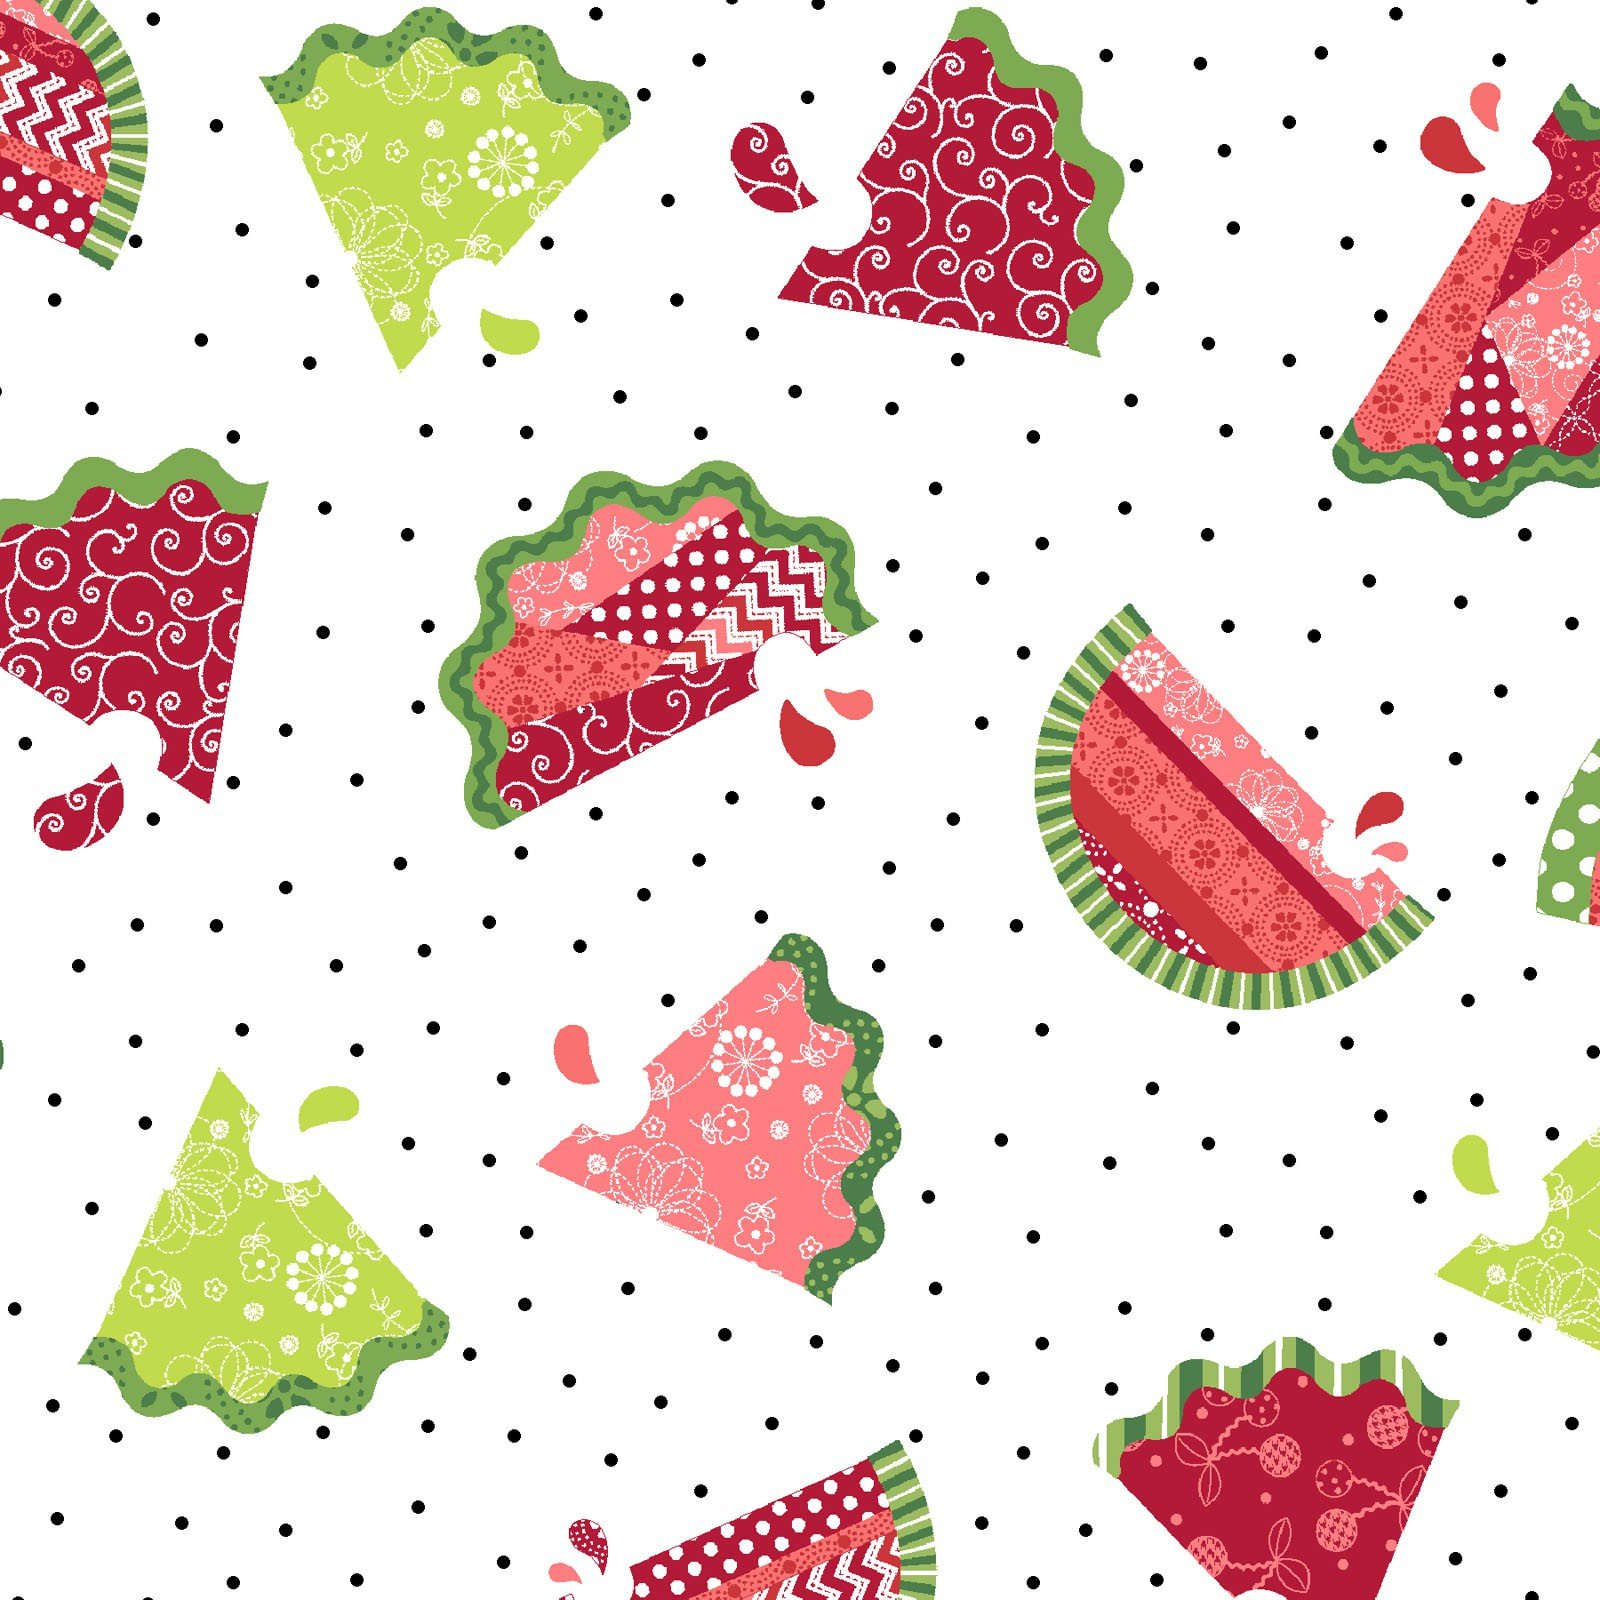 Sprinkle Sunshine-Watermelons on white